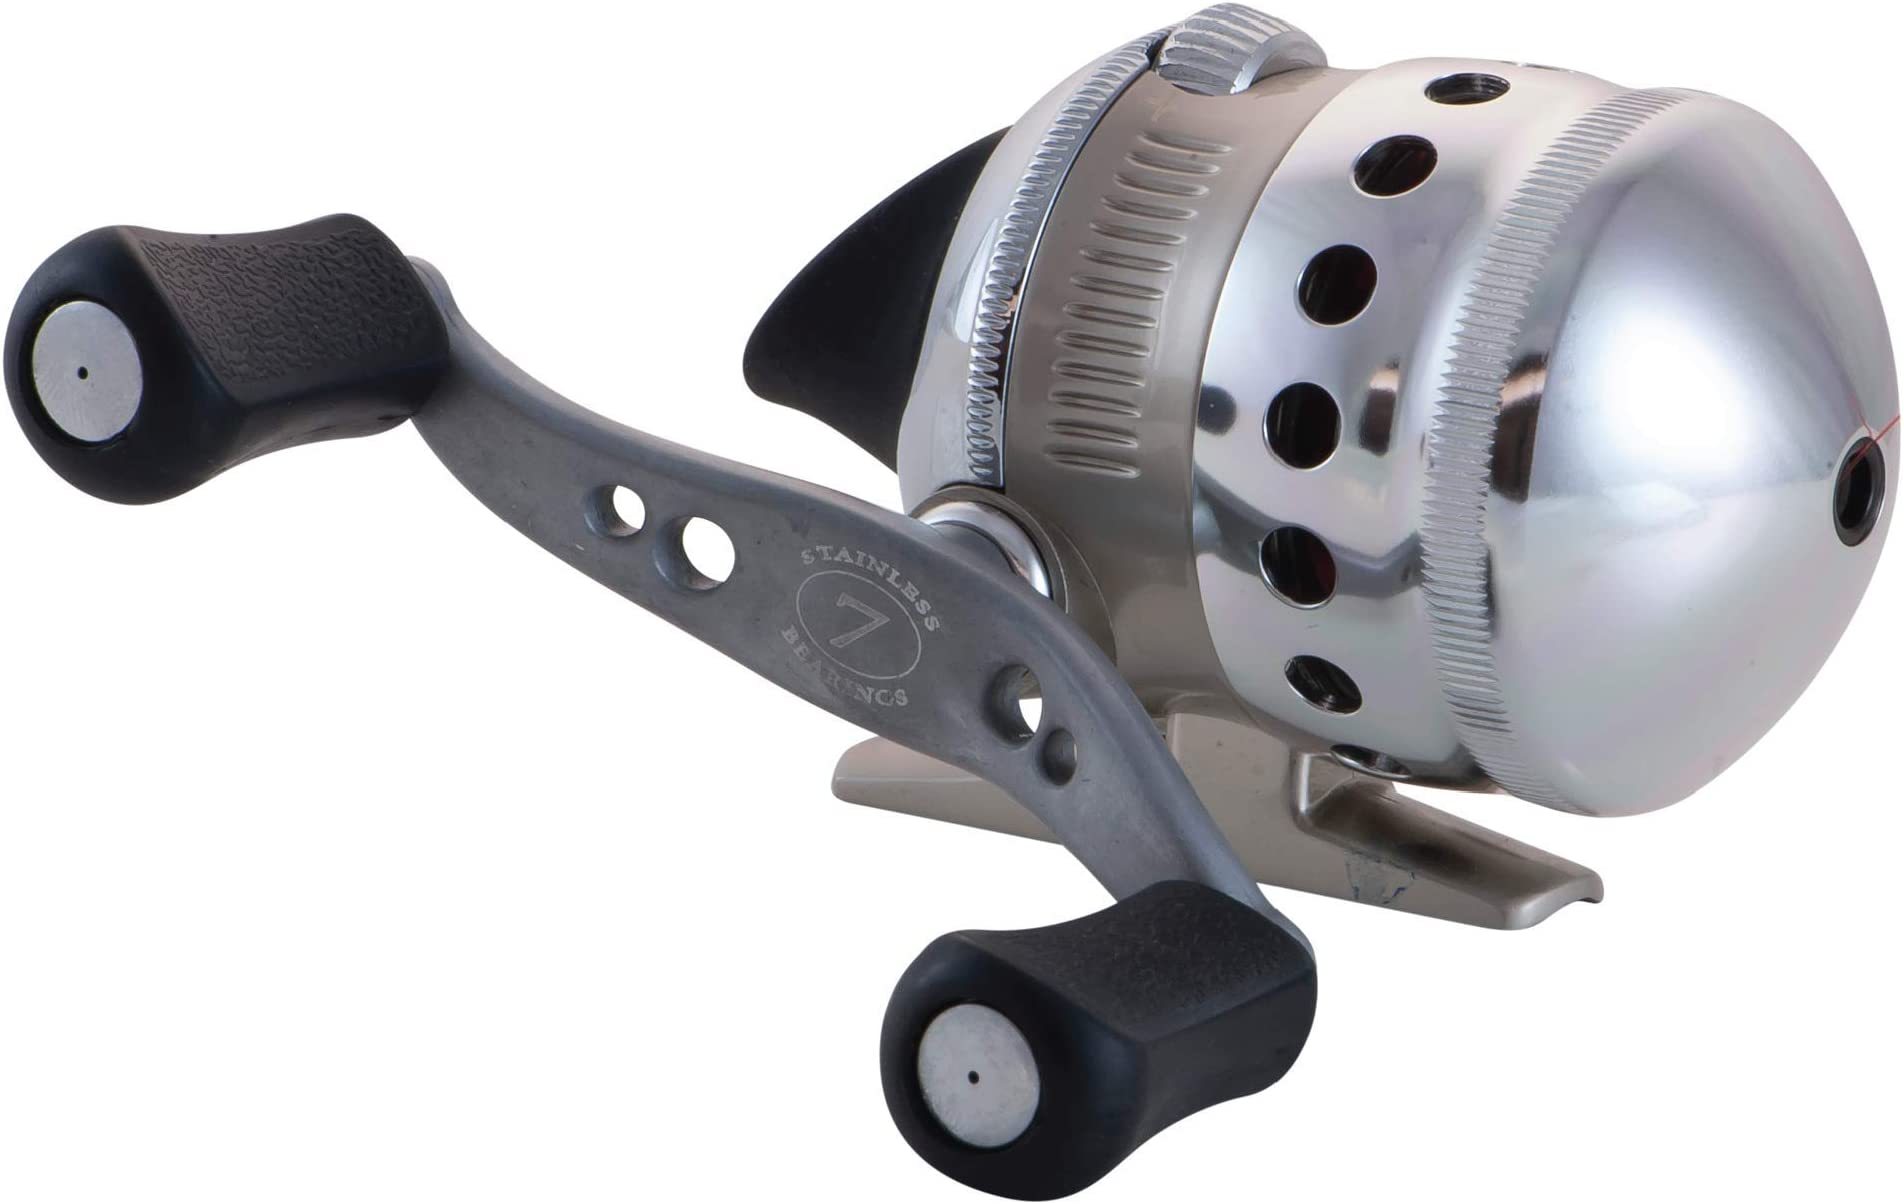 Zebco Omega Spincast Fishing Reel, 7 Bearings (6 + Clutch), Instant Anti-Reverse with a Smooth Dial-Adjustable Drag, Powerful All-Metal Gears and Spare Spool